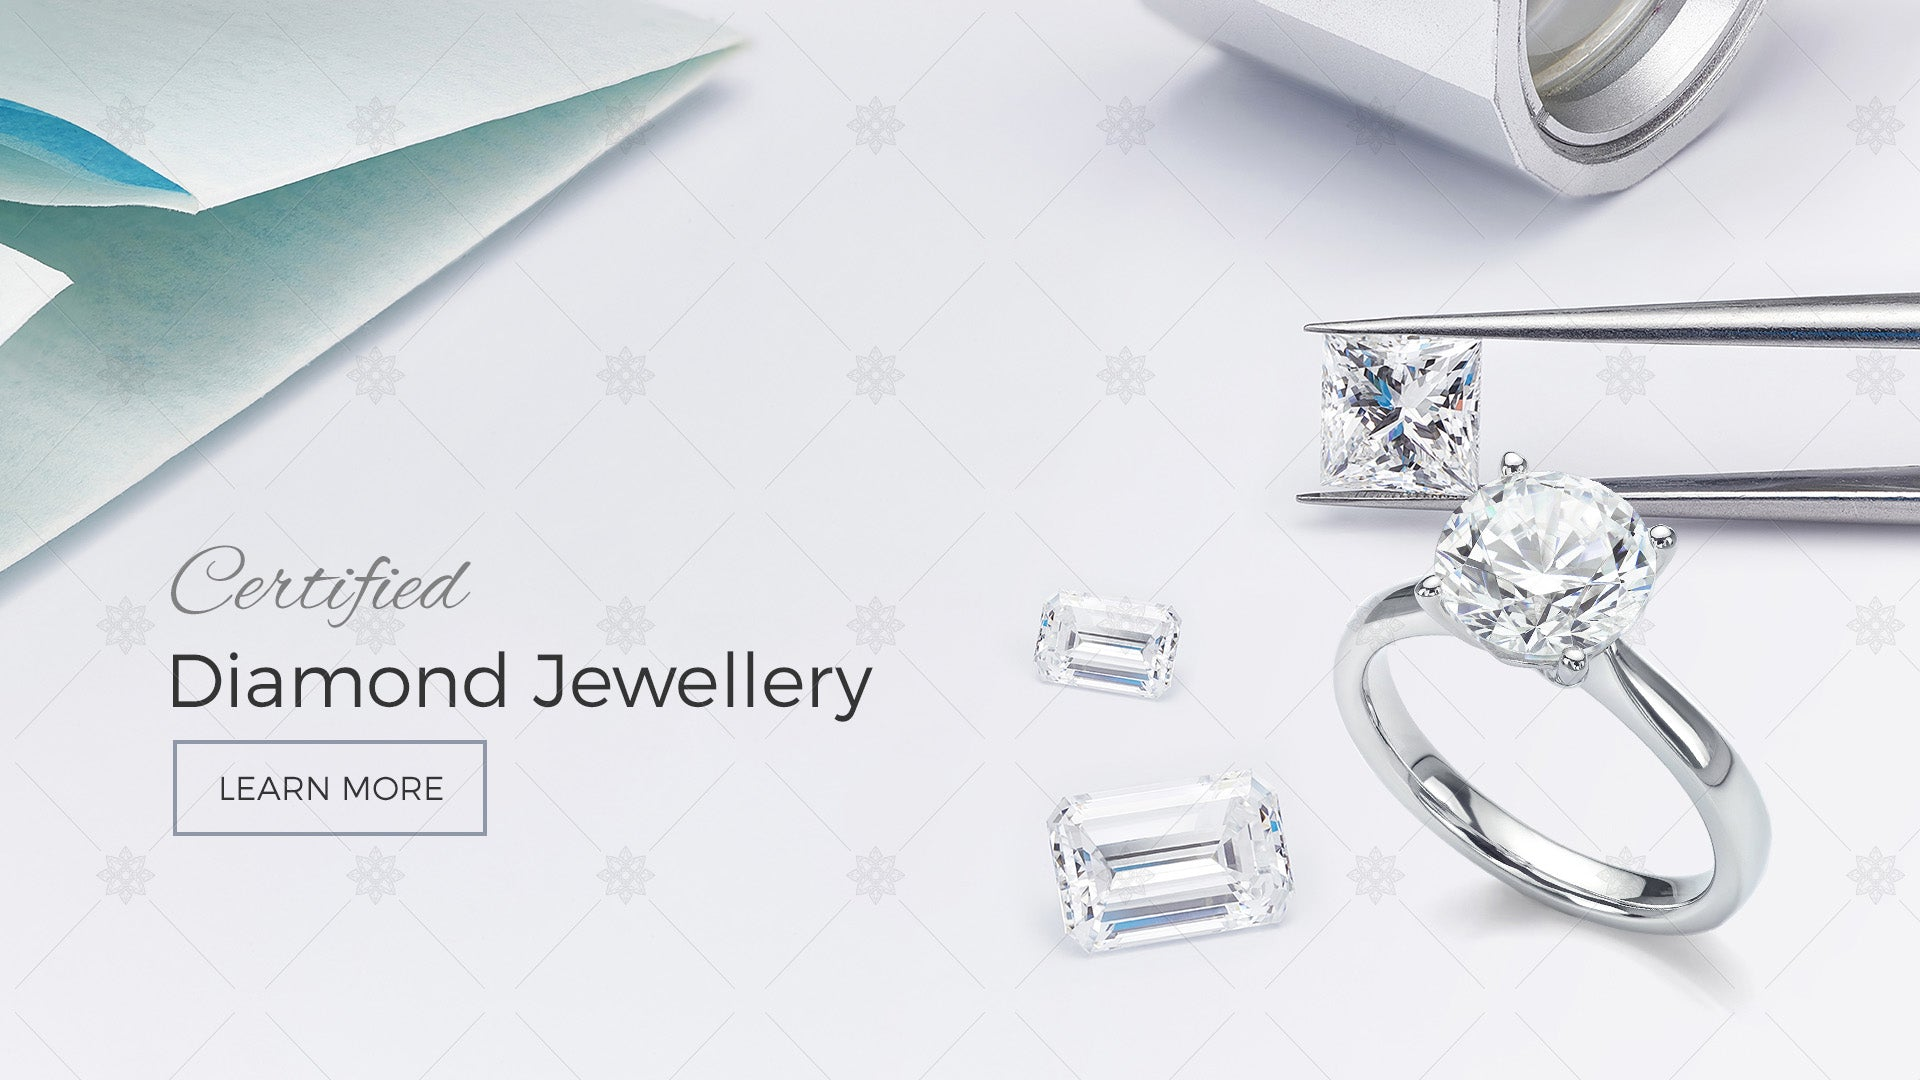 Certified Diamonds Website Banner design